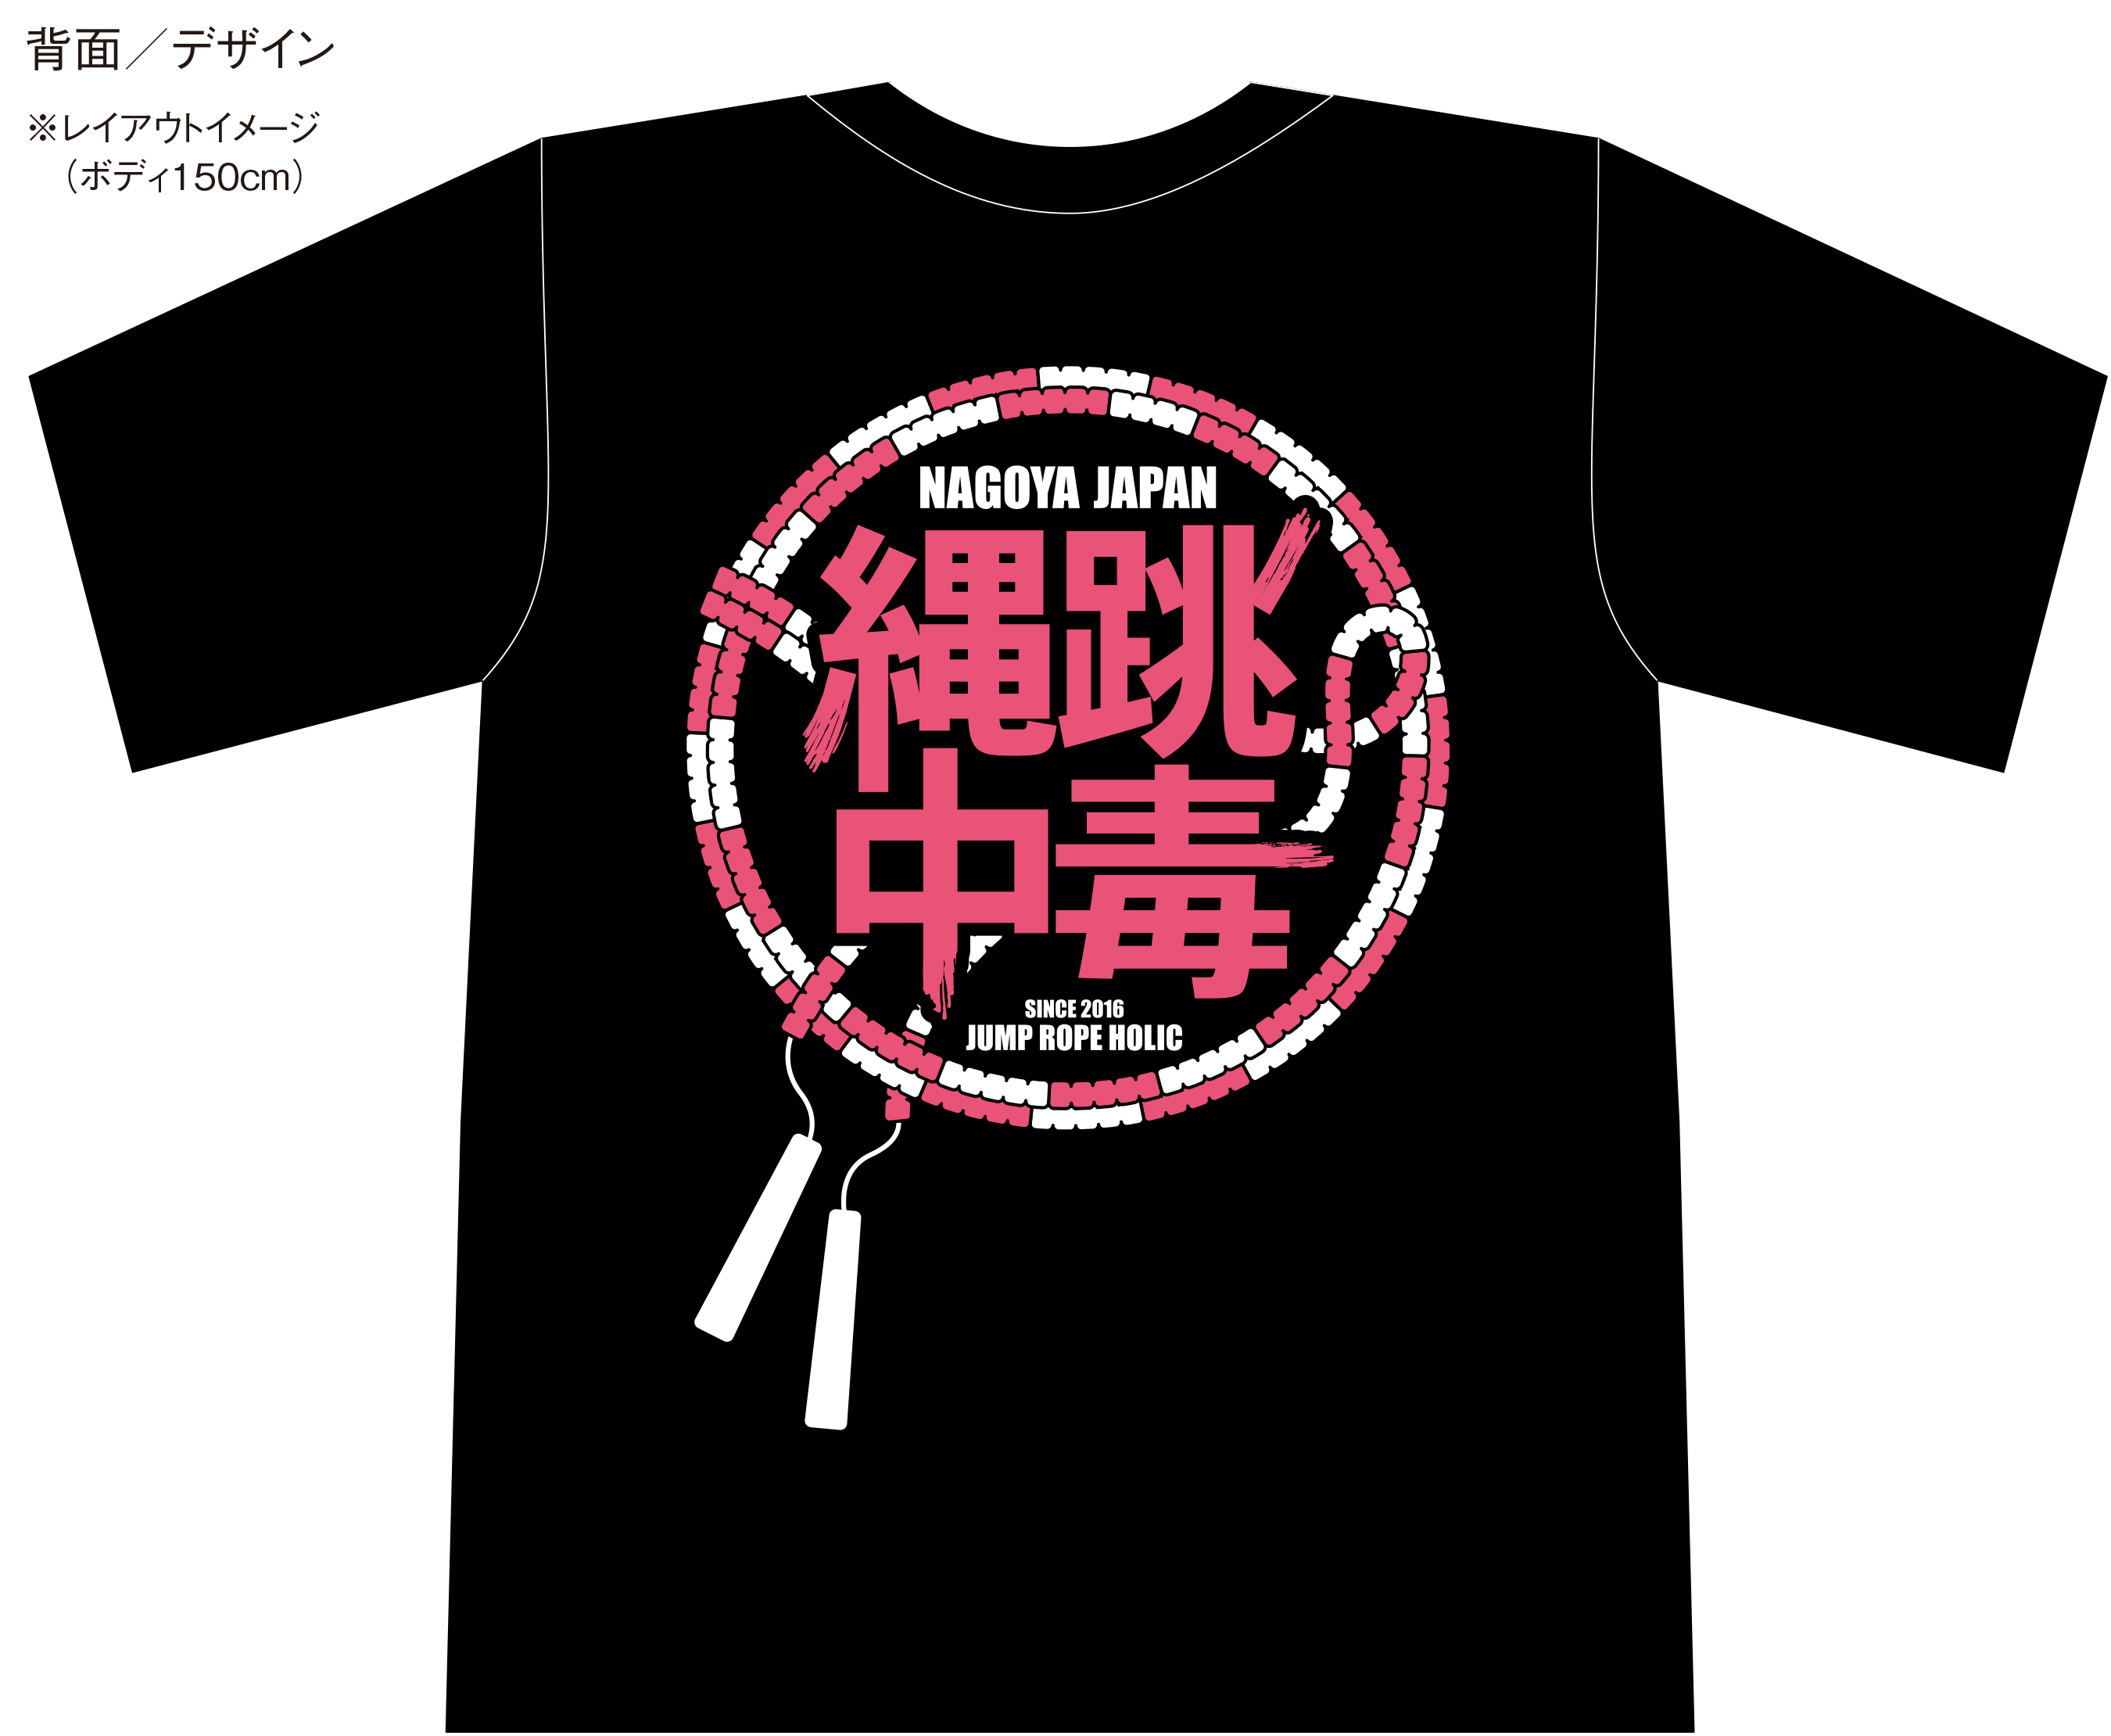 【NEWカラー】縄跳中毒Tシャツ(黒/ピンク)